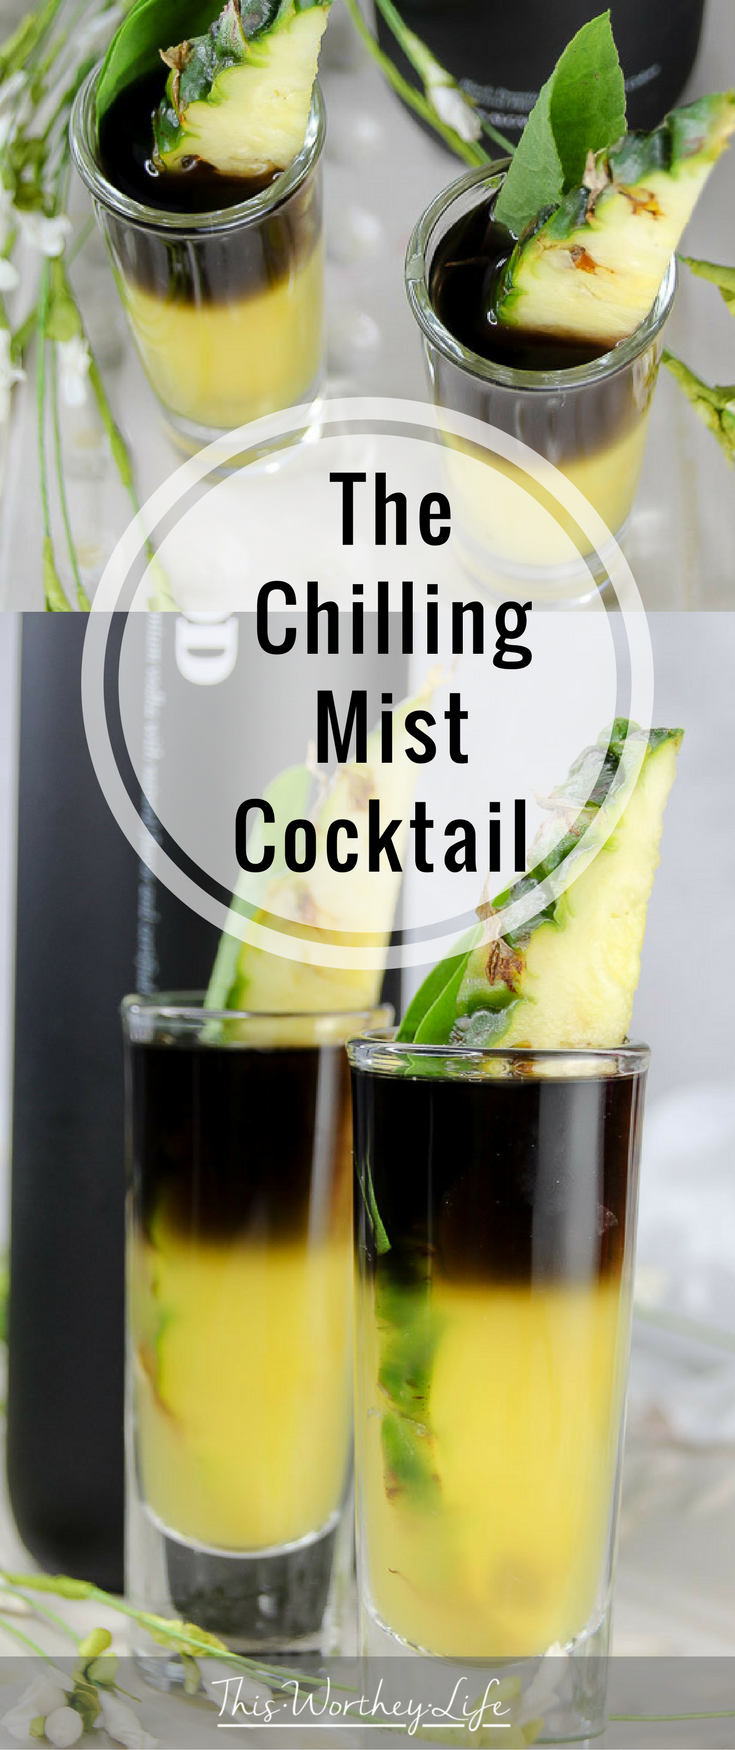 Marvel's Black Panther arrives in theaters February 16th. We're celebrating with a series of Black Panther Themed cocktails. The Chilling Mist Cocktail is made with black vodka, Sorrel Infused Simple Syrup, pineapple juice, and a pineapple garnish. Grab the recipe below and great ready to celebrate all things, Black Panther!